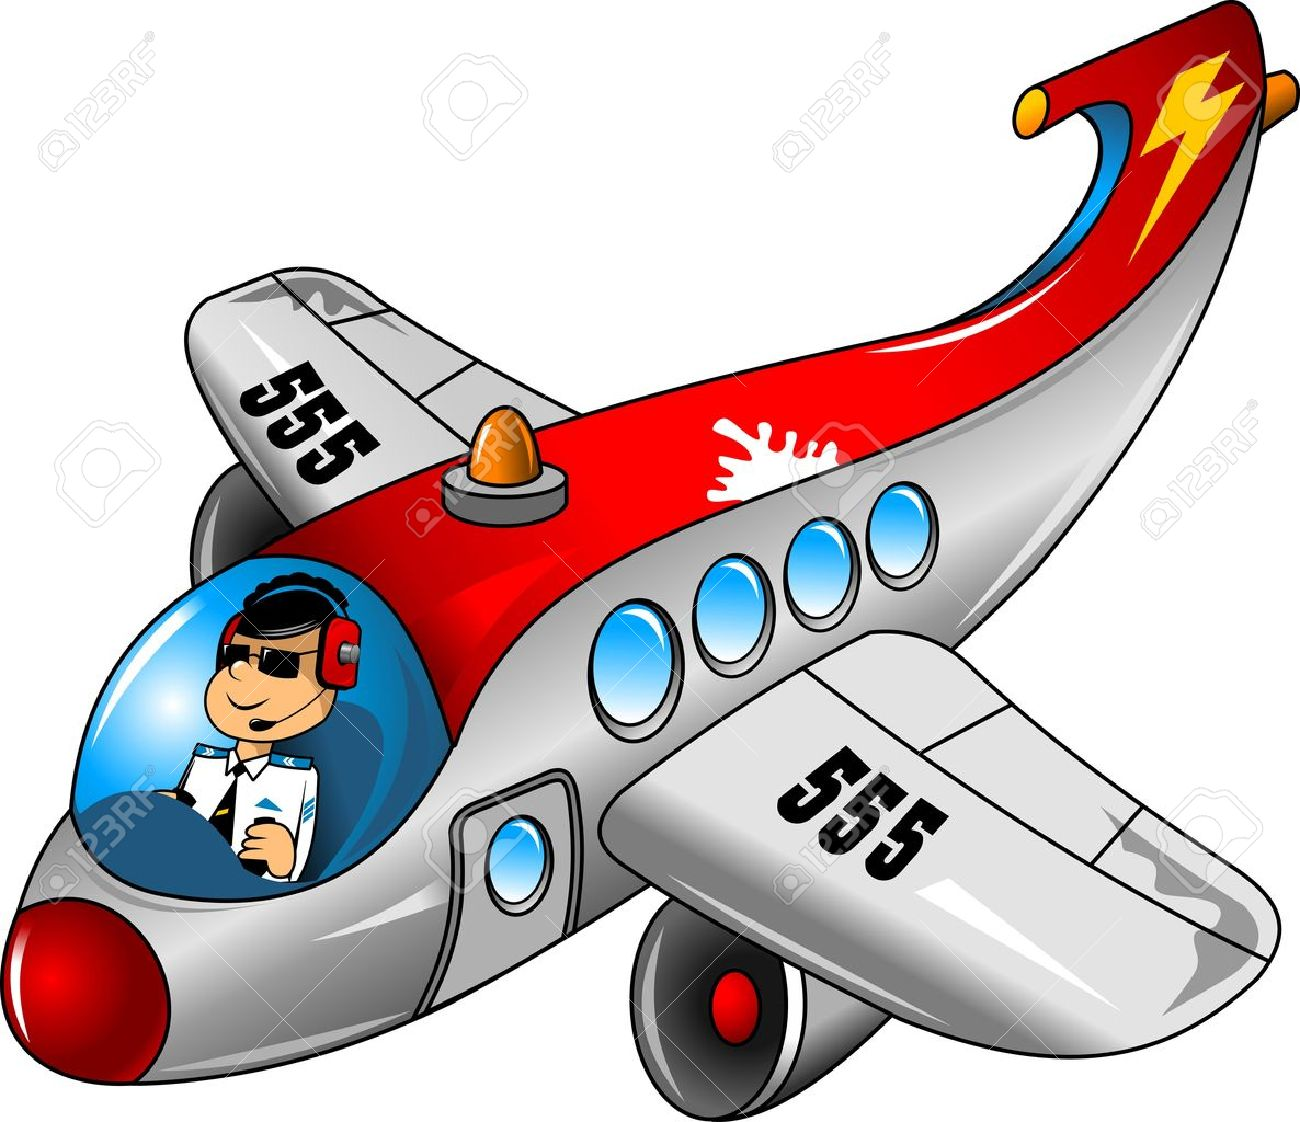 fun on a beautiful airplane pilot royalty free cliparts vectors rh 123rf com Airline Pilot Cartoon new yorker airplane pilot cartoon